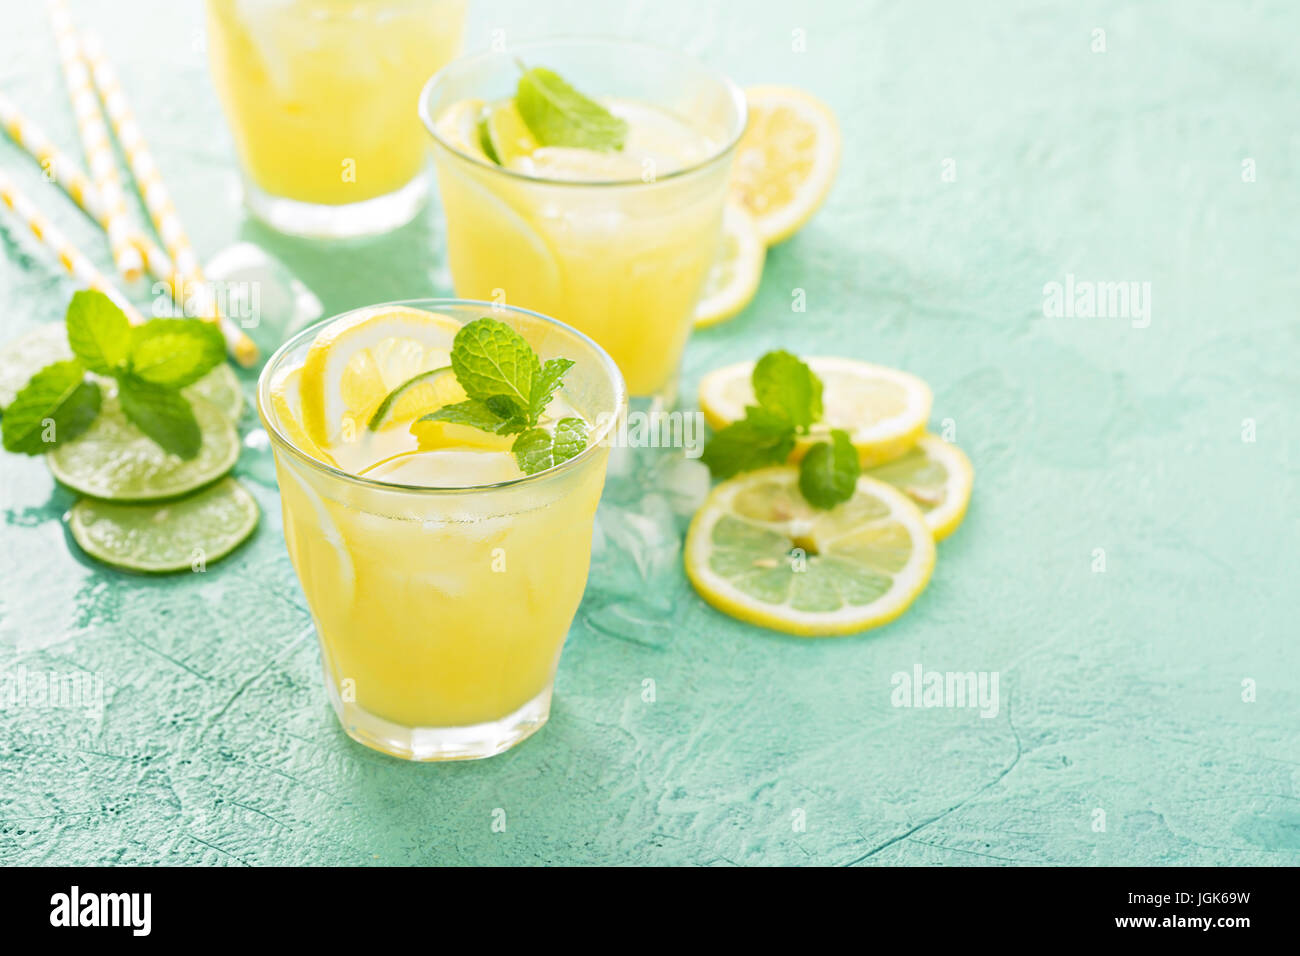 Refreshing citrus cocktail with lemon - Stock Image